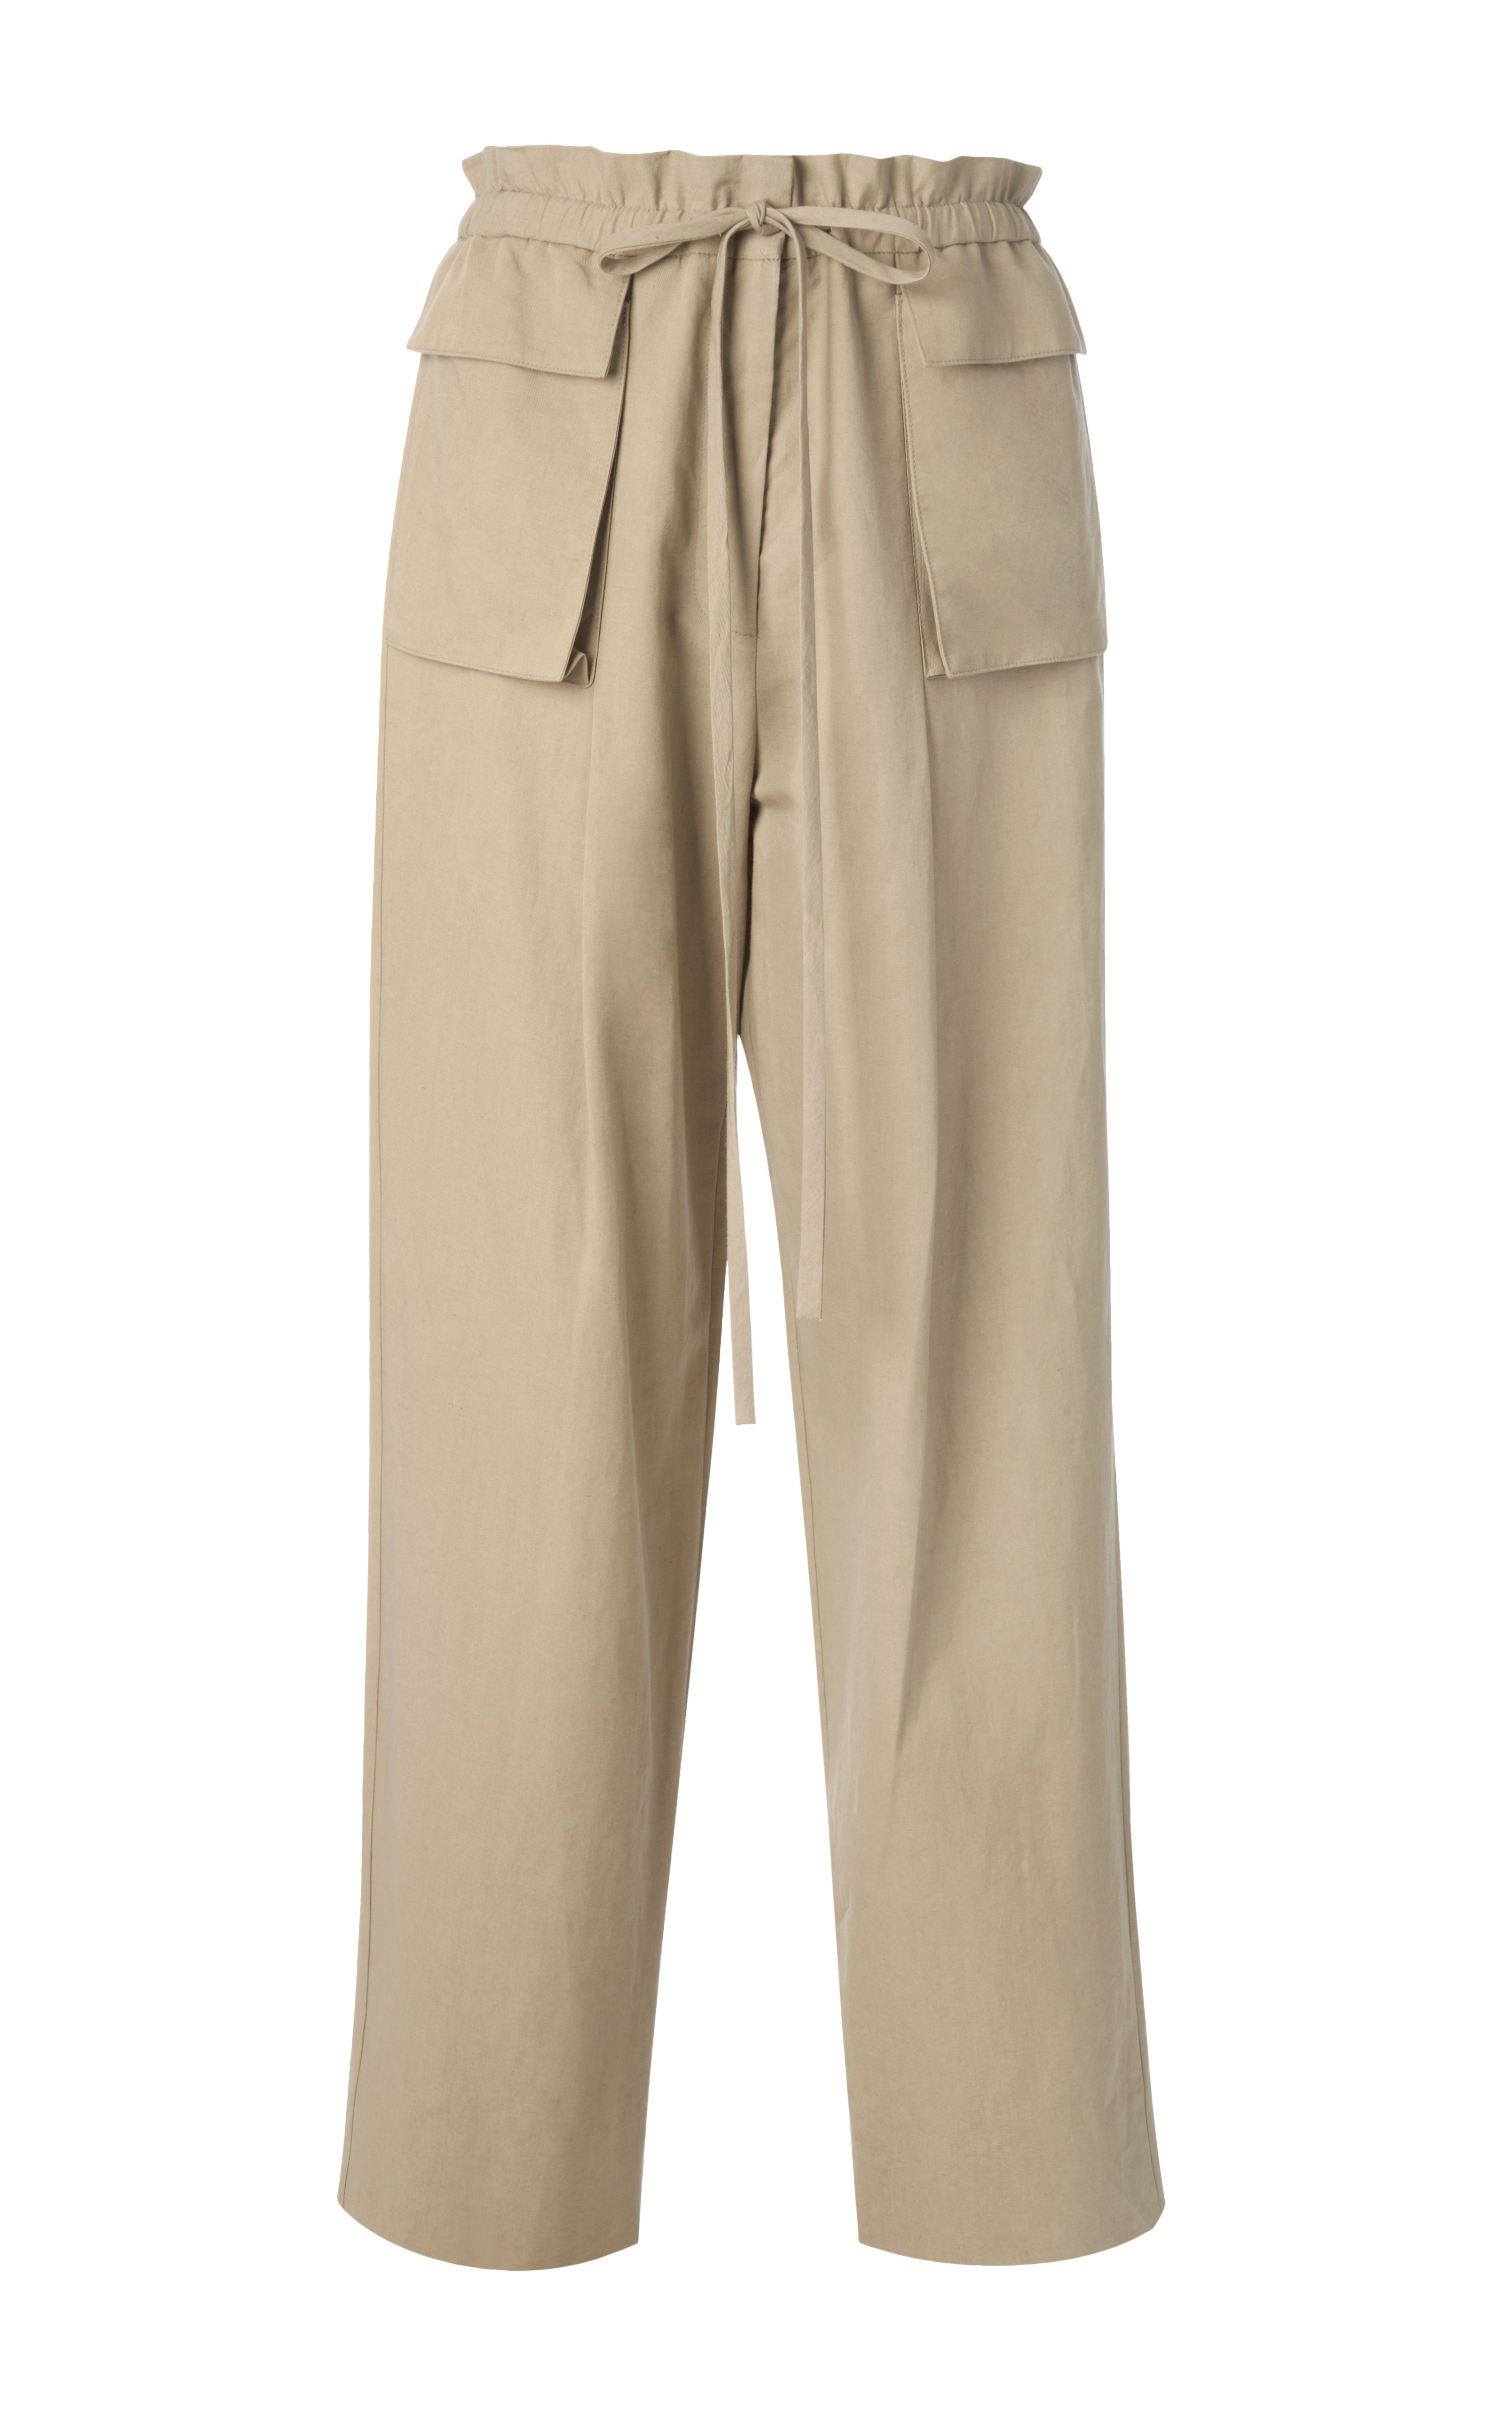 Rosie Assoulin Cotton And Linen Blend Pleated Cargo Pants